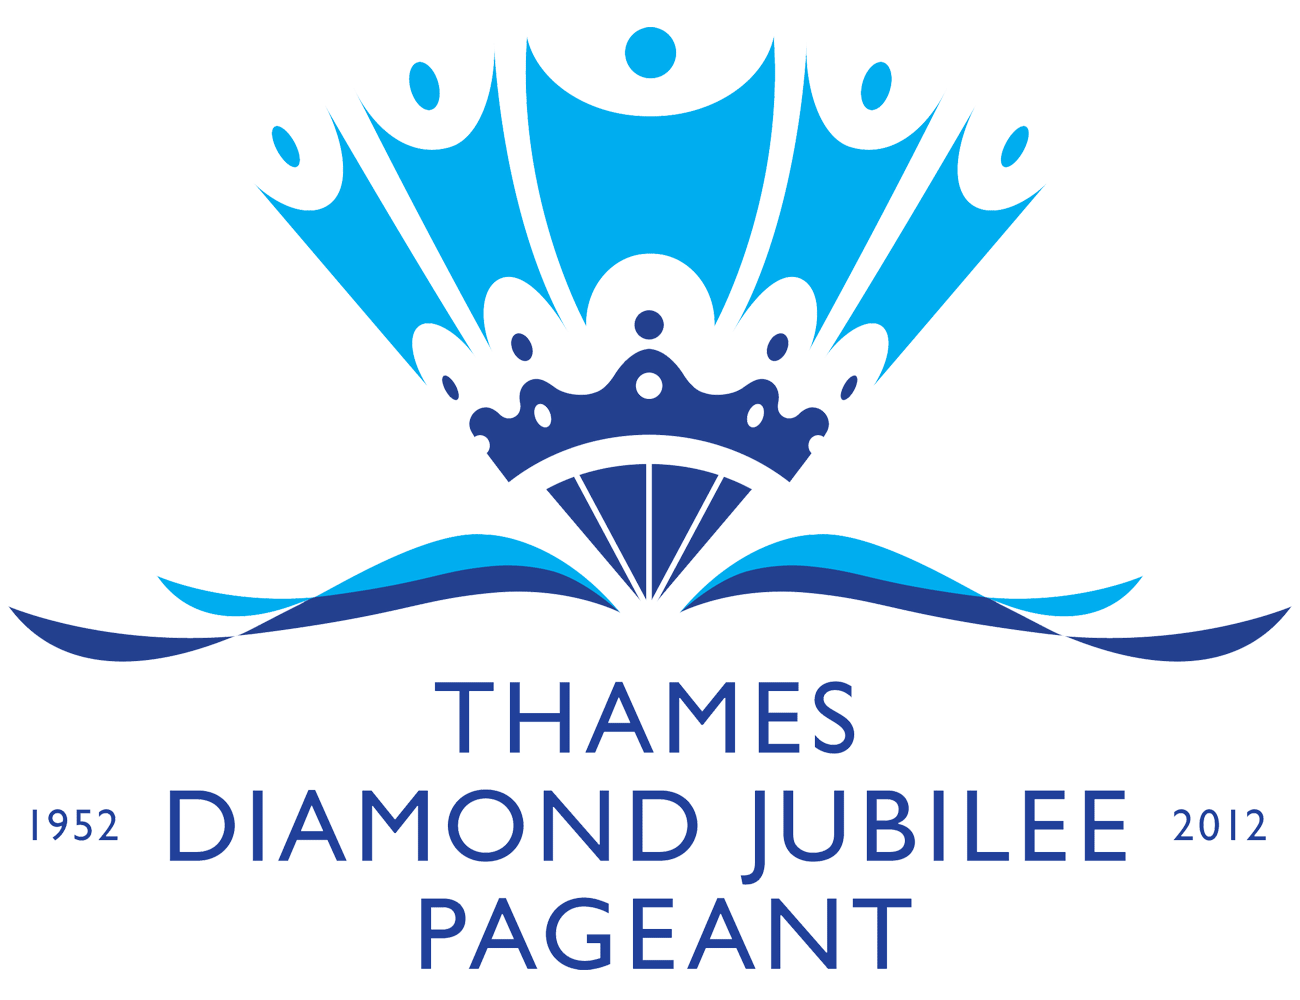 Thames Diamond Jubilee Pageant 2012 logo